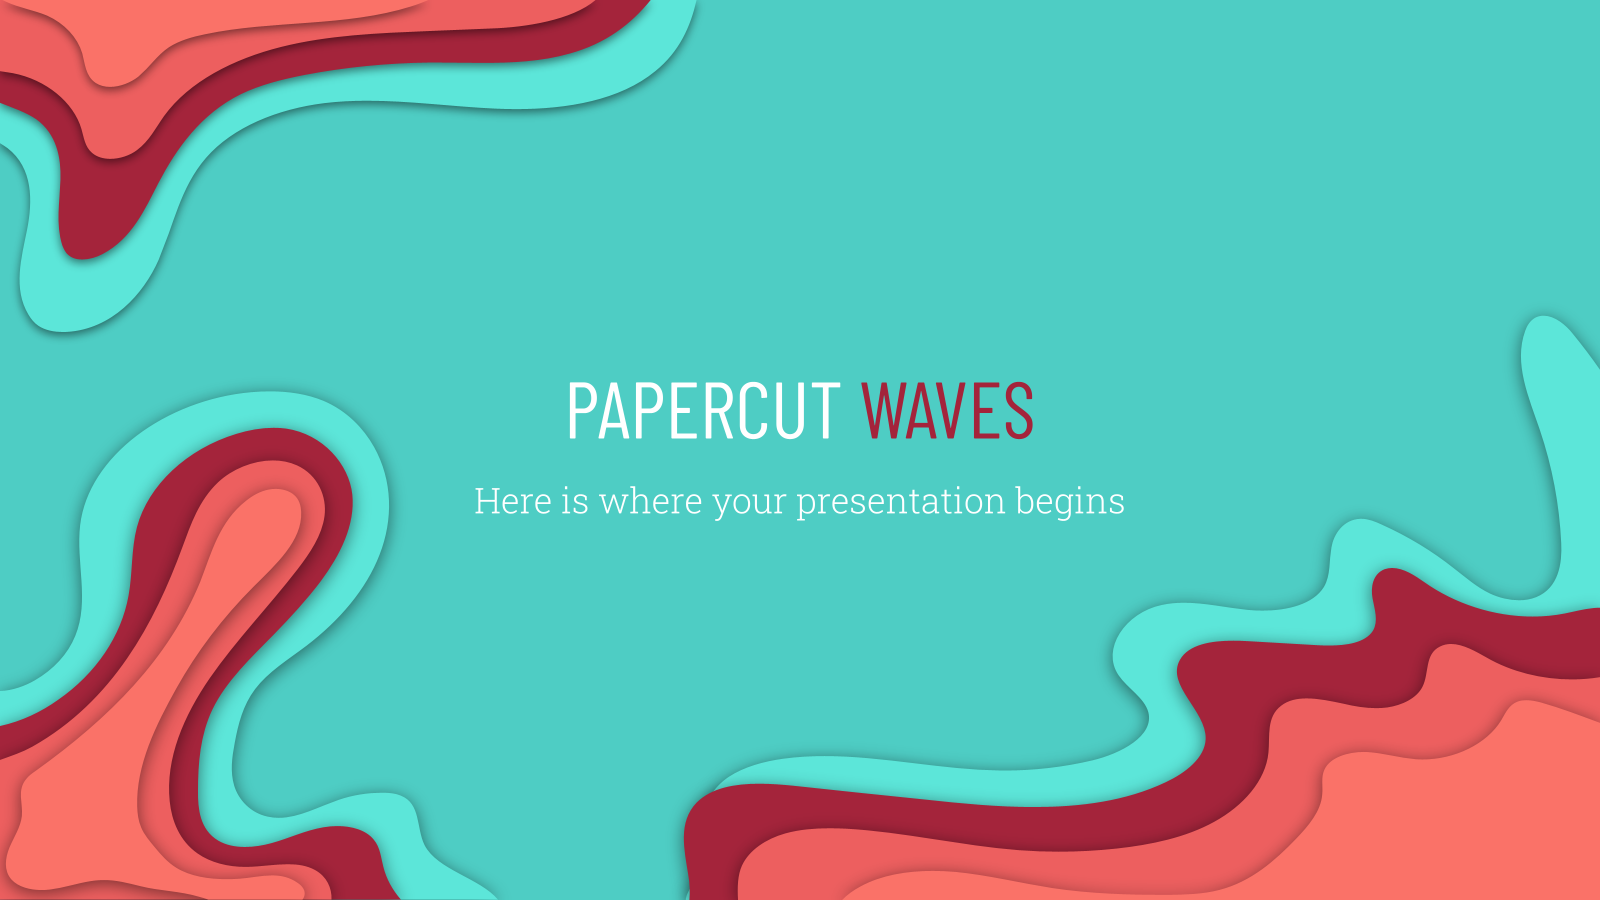 Papercut Waves presentation template